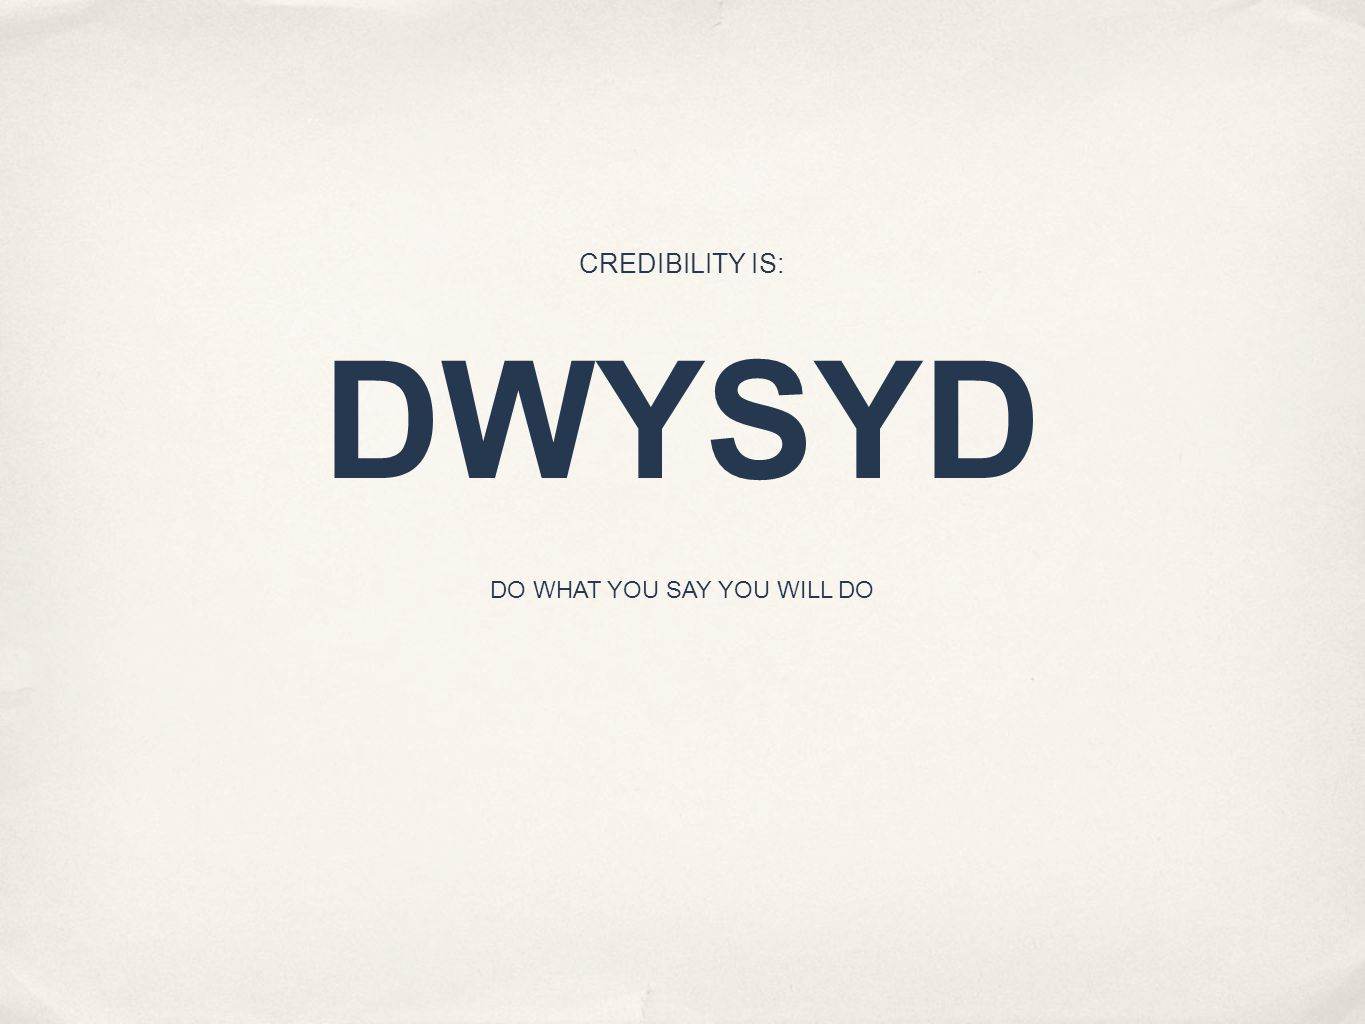 DWYSYD CREDIBILITY IS: DO WHAT YOU SAY YOU WILL DO